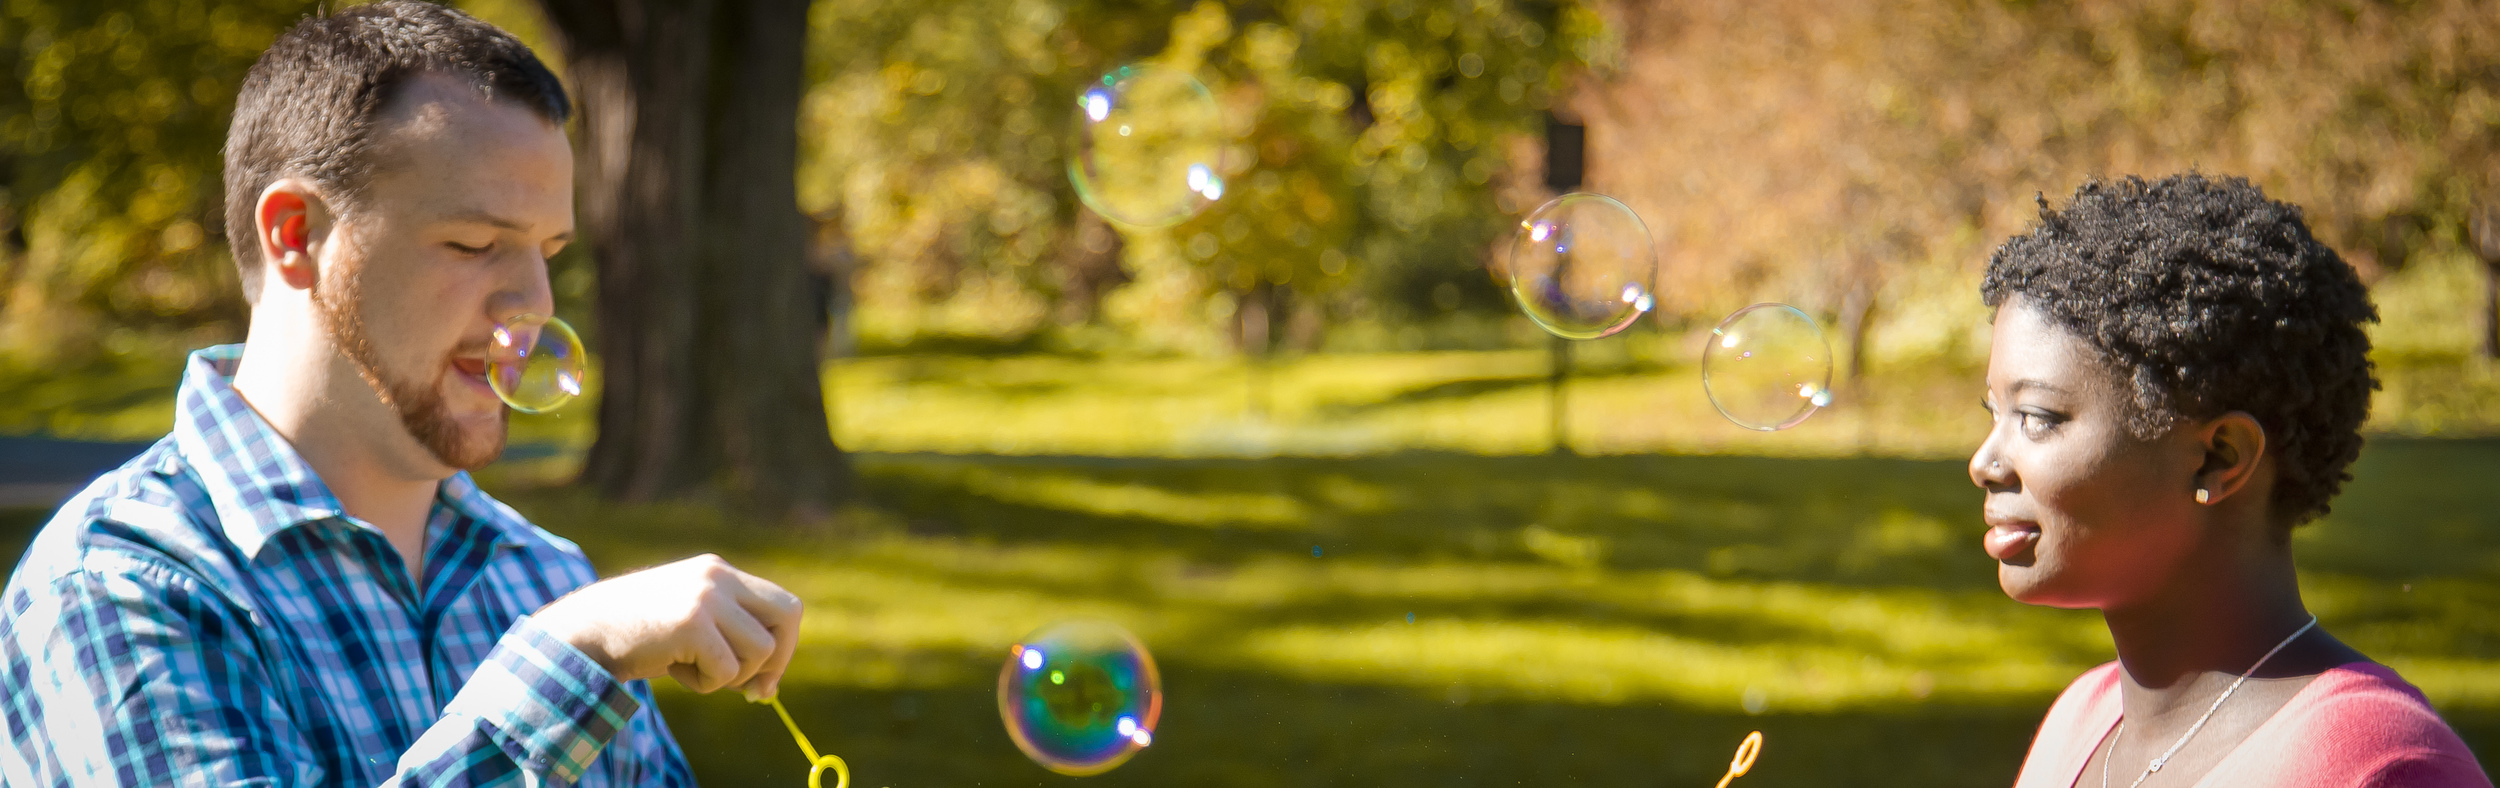 Matt and Sarah are playing with Bubbles and having fun with our scene.